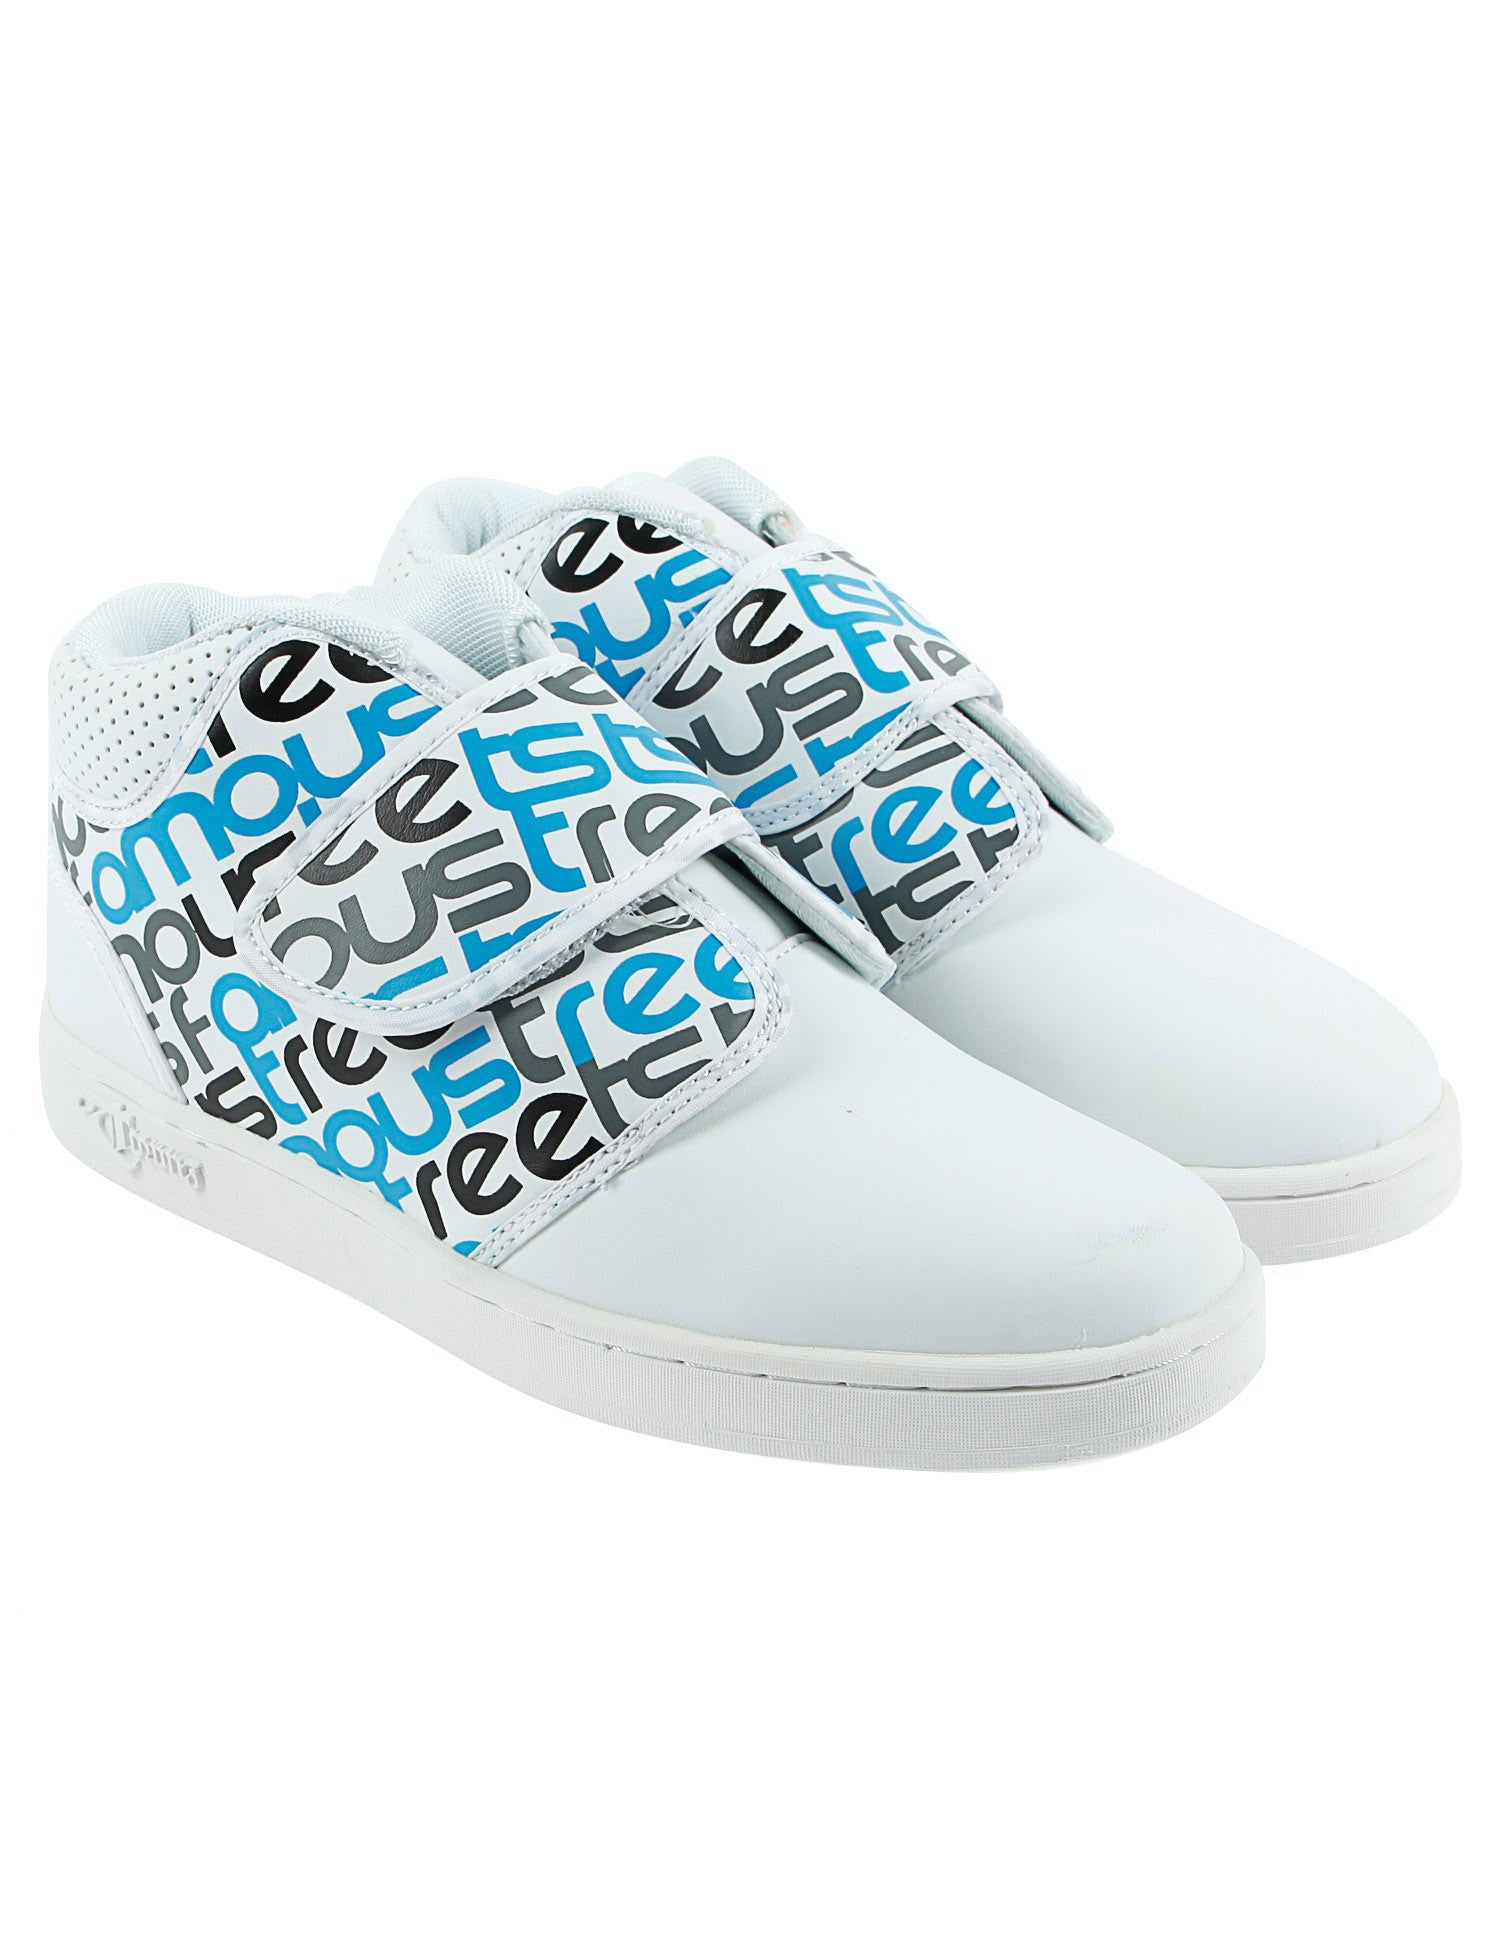 Townz Shoes G206 White